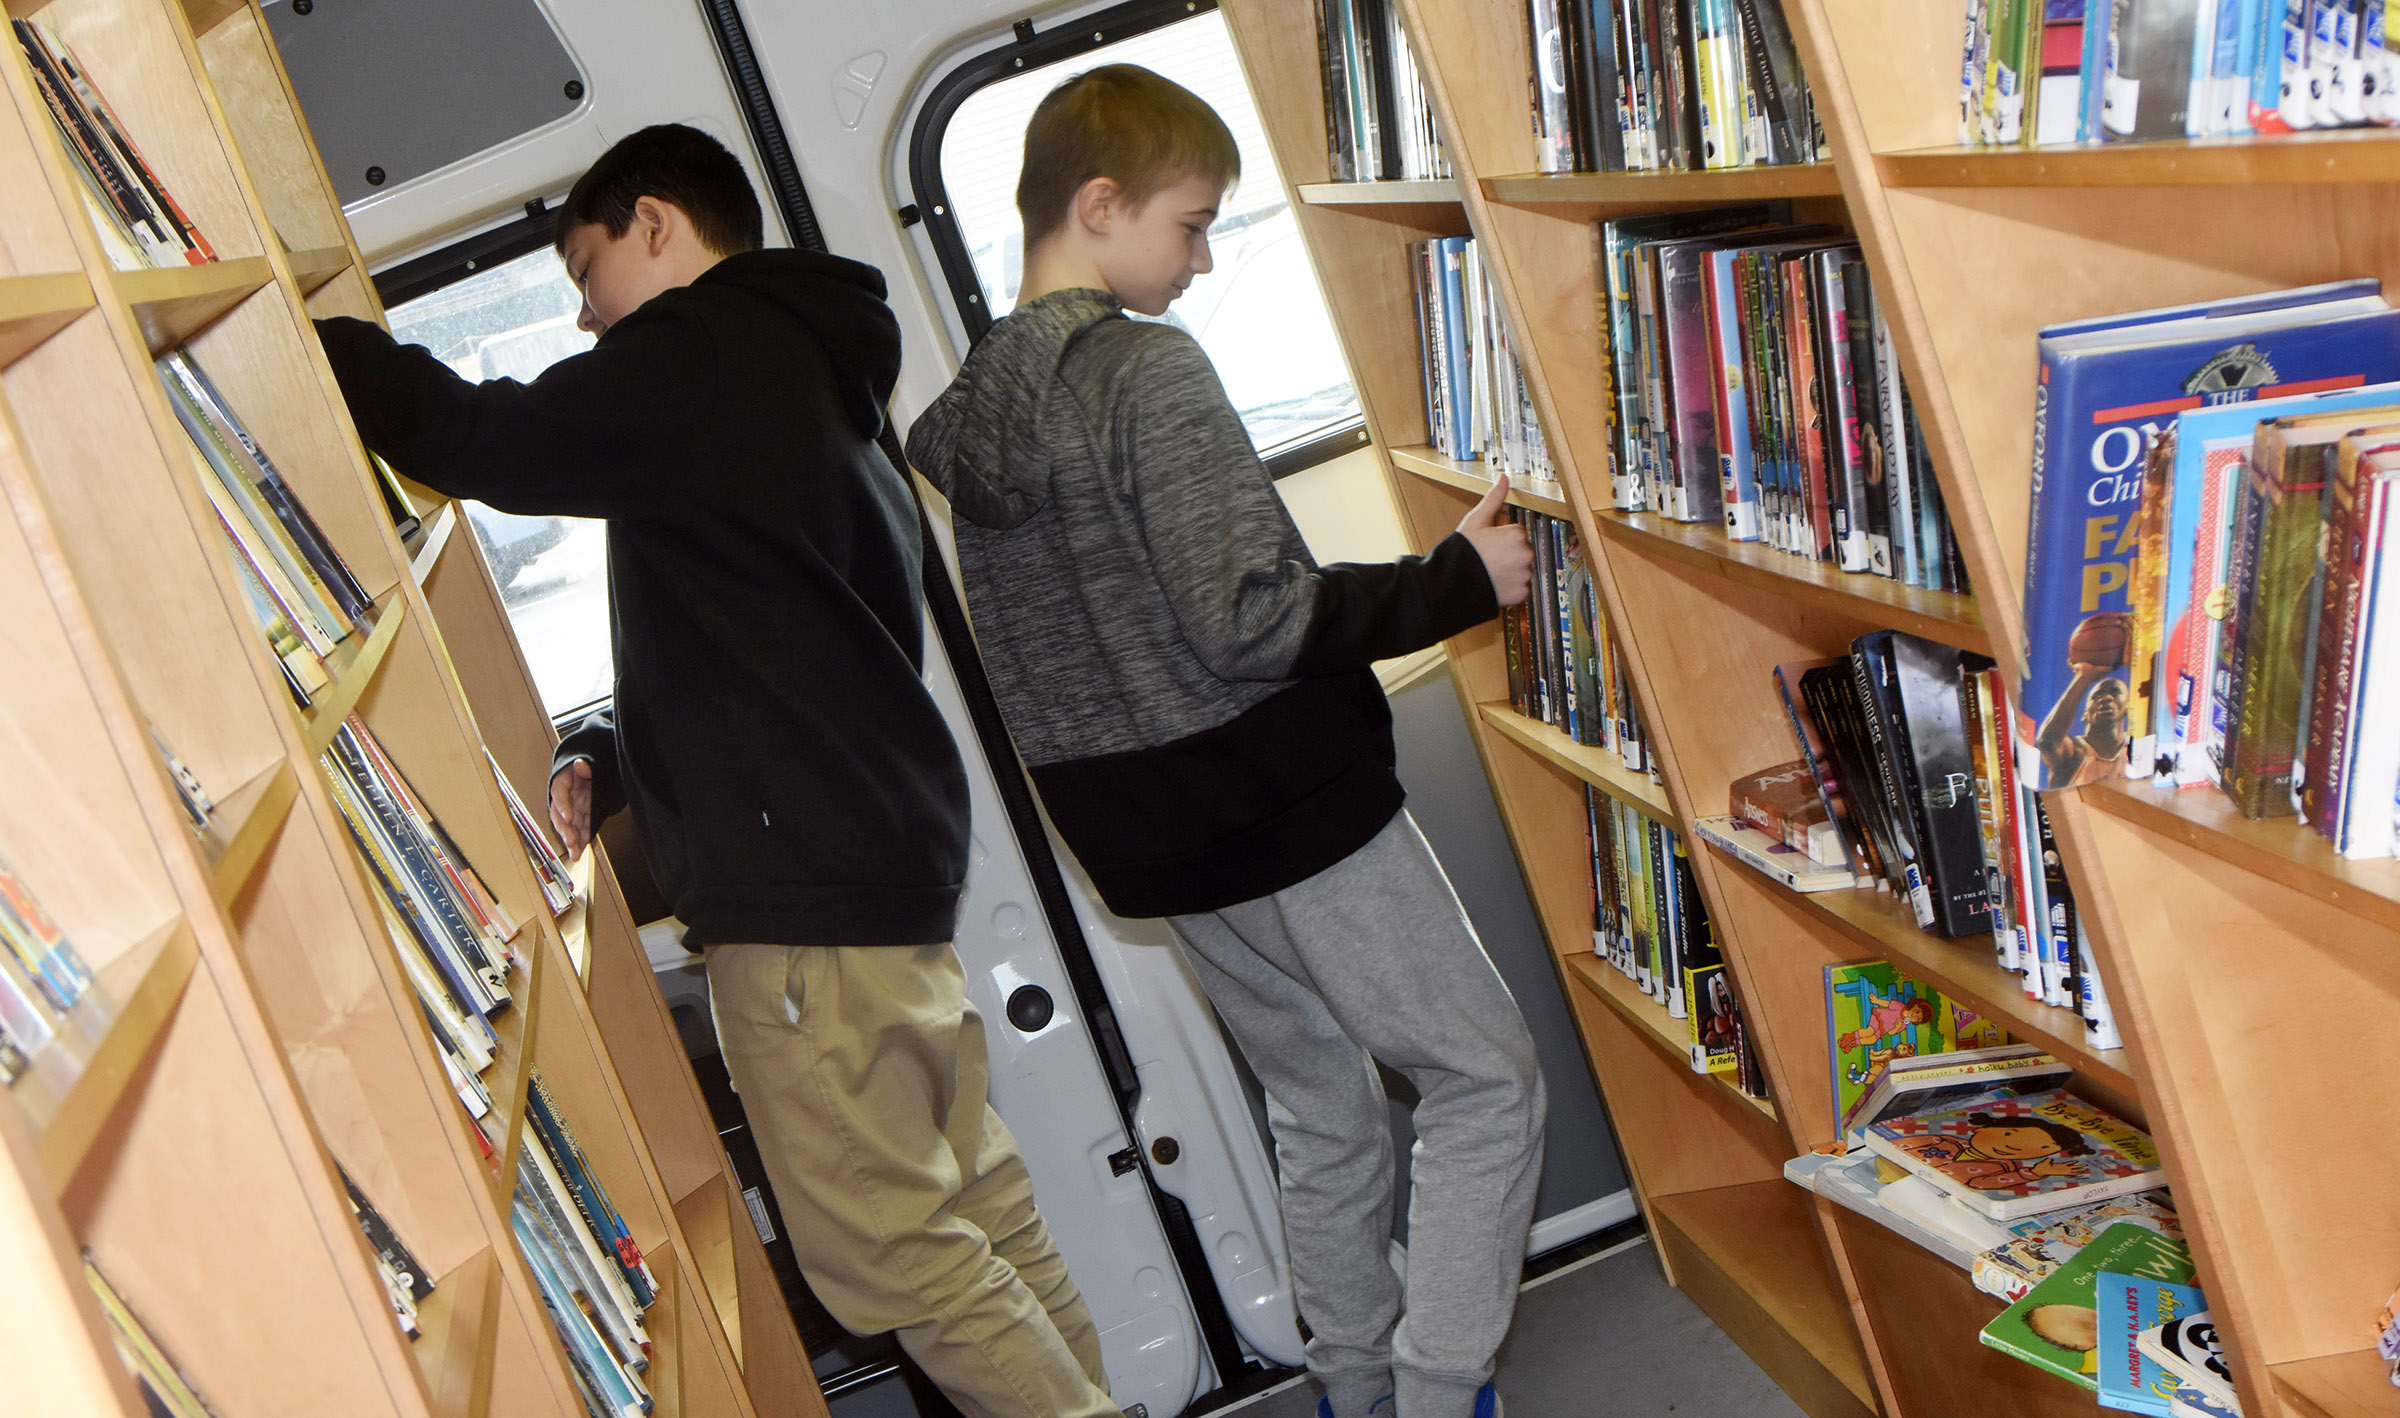 CMS seventh-graders Gregory Burton, at left, and Ethan Cox browse books on the bookmobile.